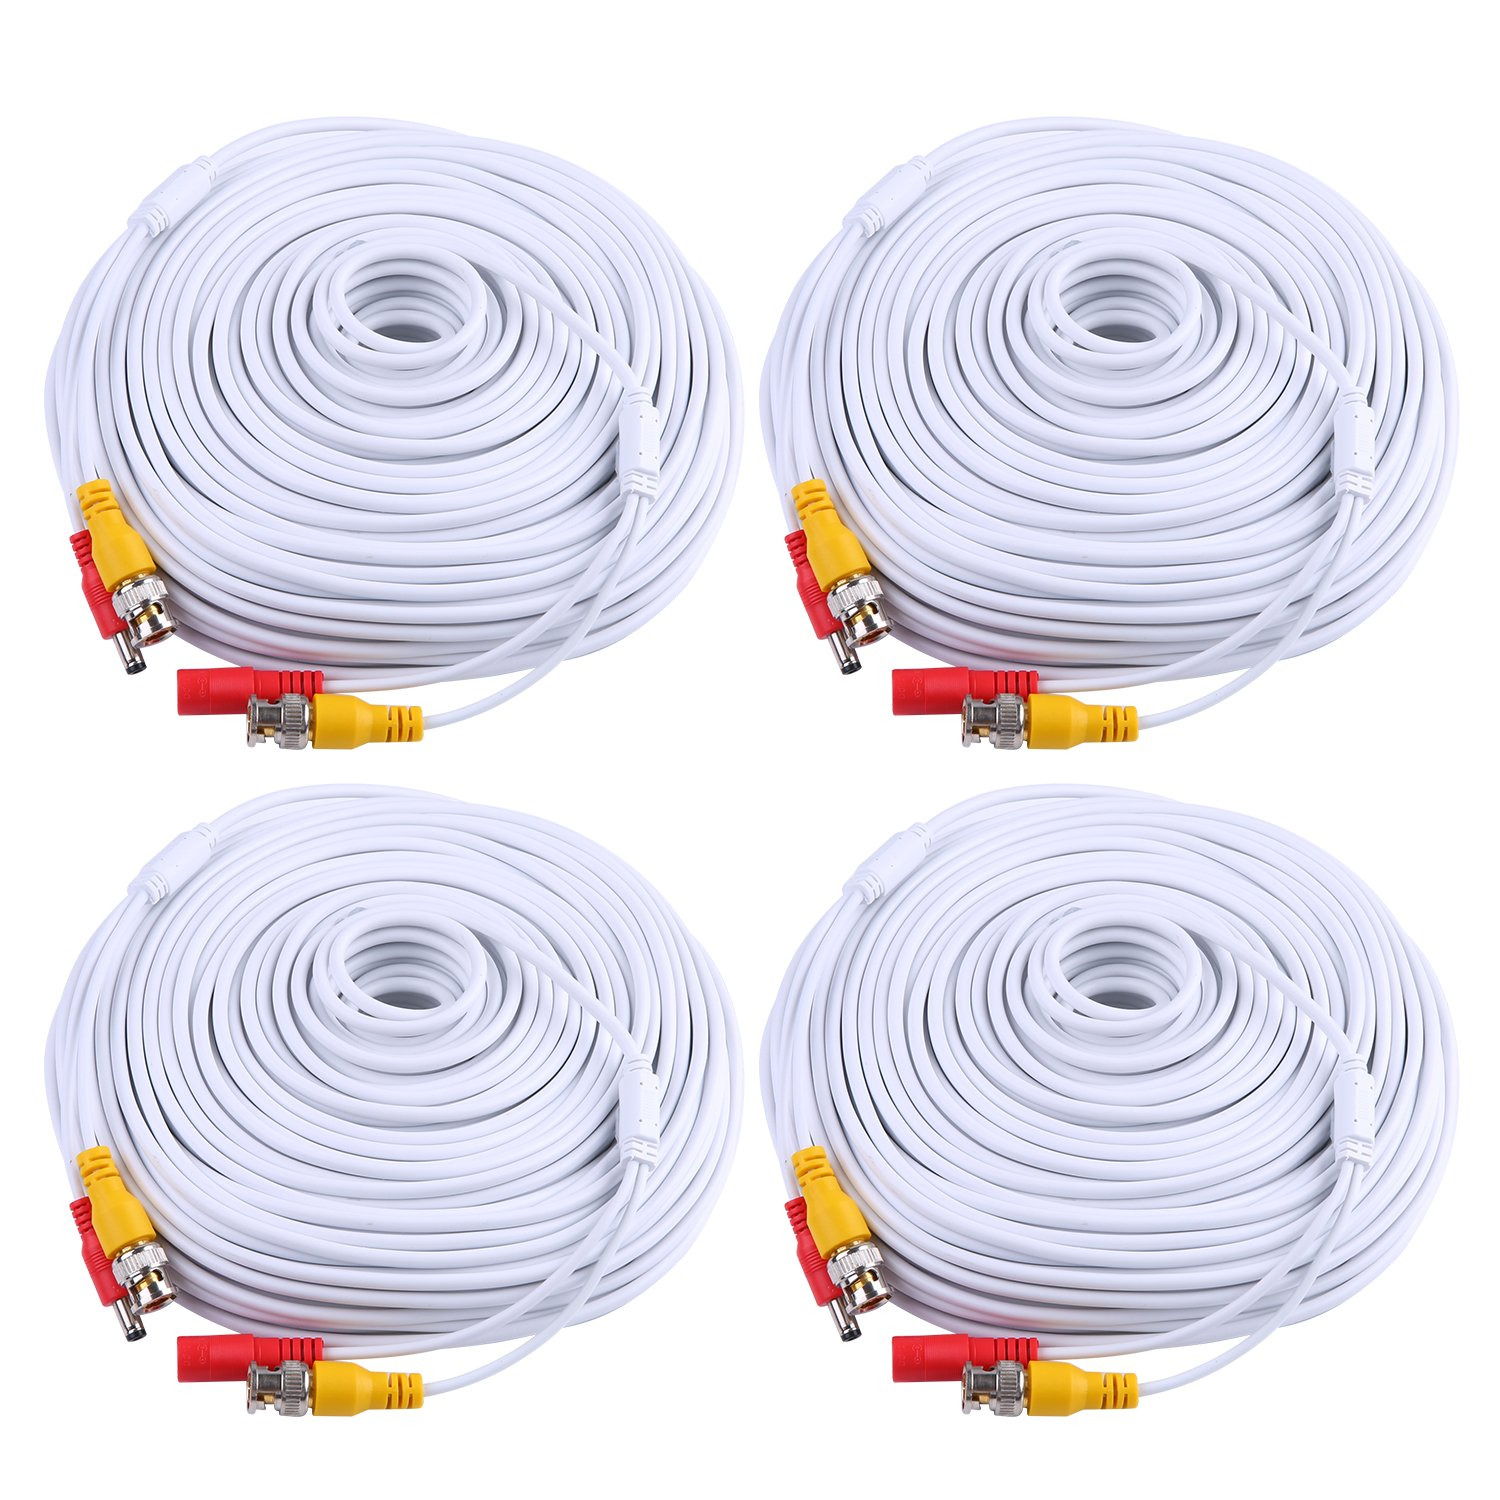 ANNKE (4) 150 Feet Video Power Cable for Security Camera System, All-in-One BNC Video and Power CCTV Security Camera Cable with Two Female Connectors (White) by ANNKE